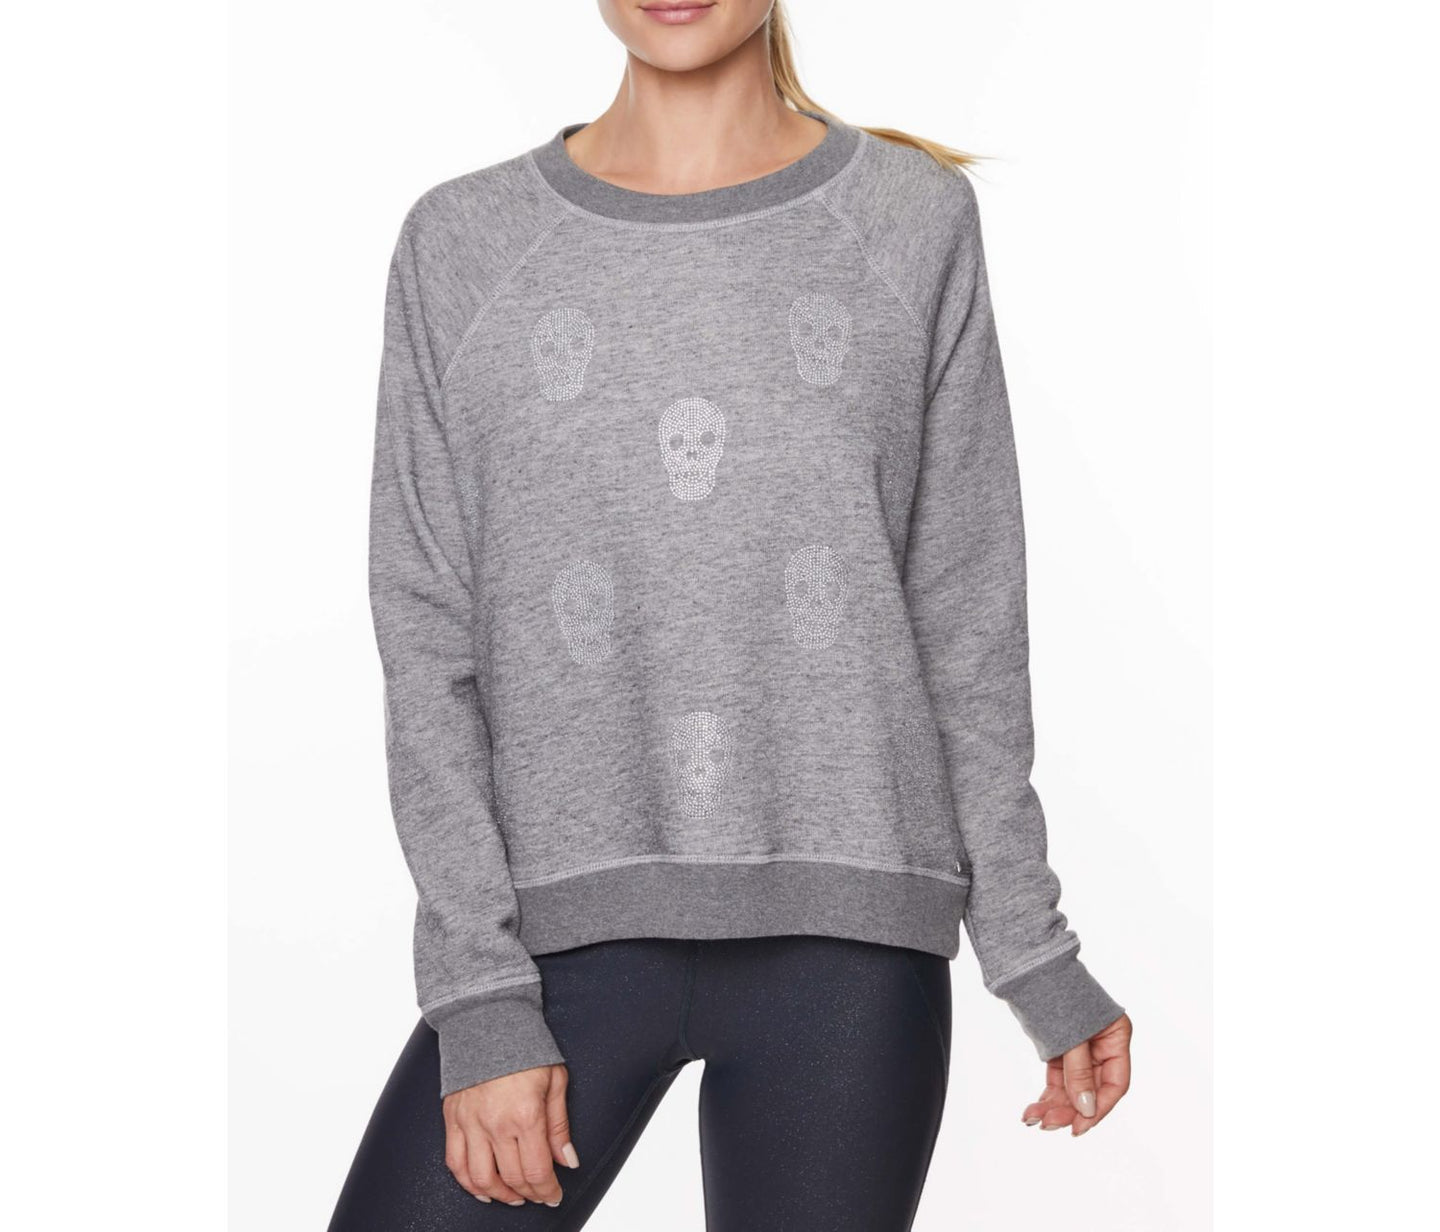 RHINESTONE SKULL PULLOVER CHARCOAL - APPAREL - Betsey Johnson